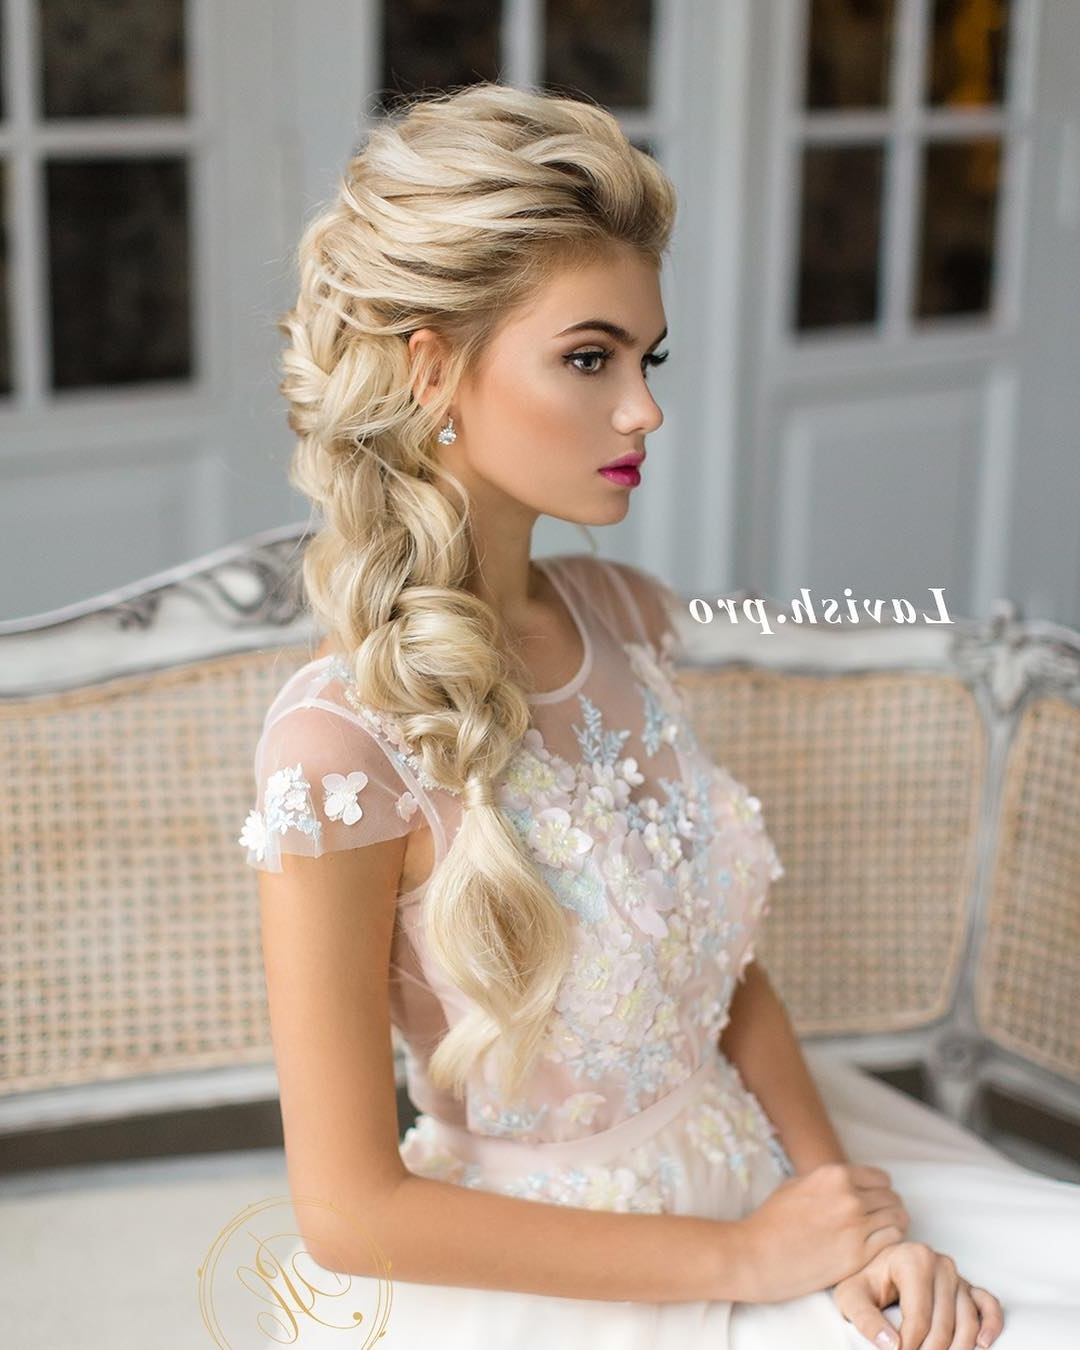 10 Lavish Wedding Hairstyles For Long Hair – Wedding Hairstyle Ideas Pertaining To Bride Updo Hairstyles (View 1 of 15)